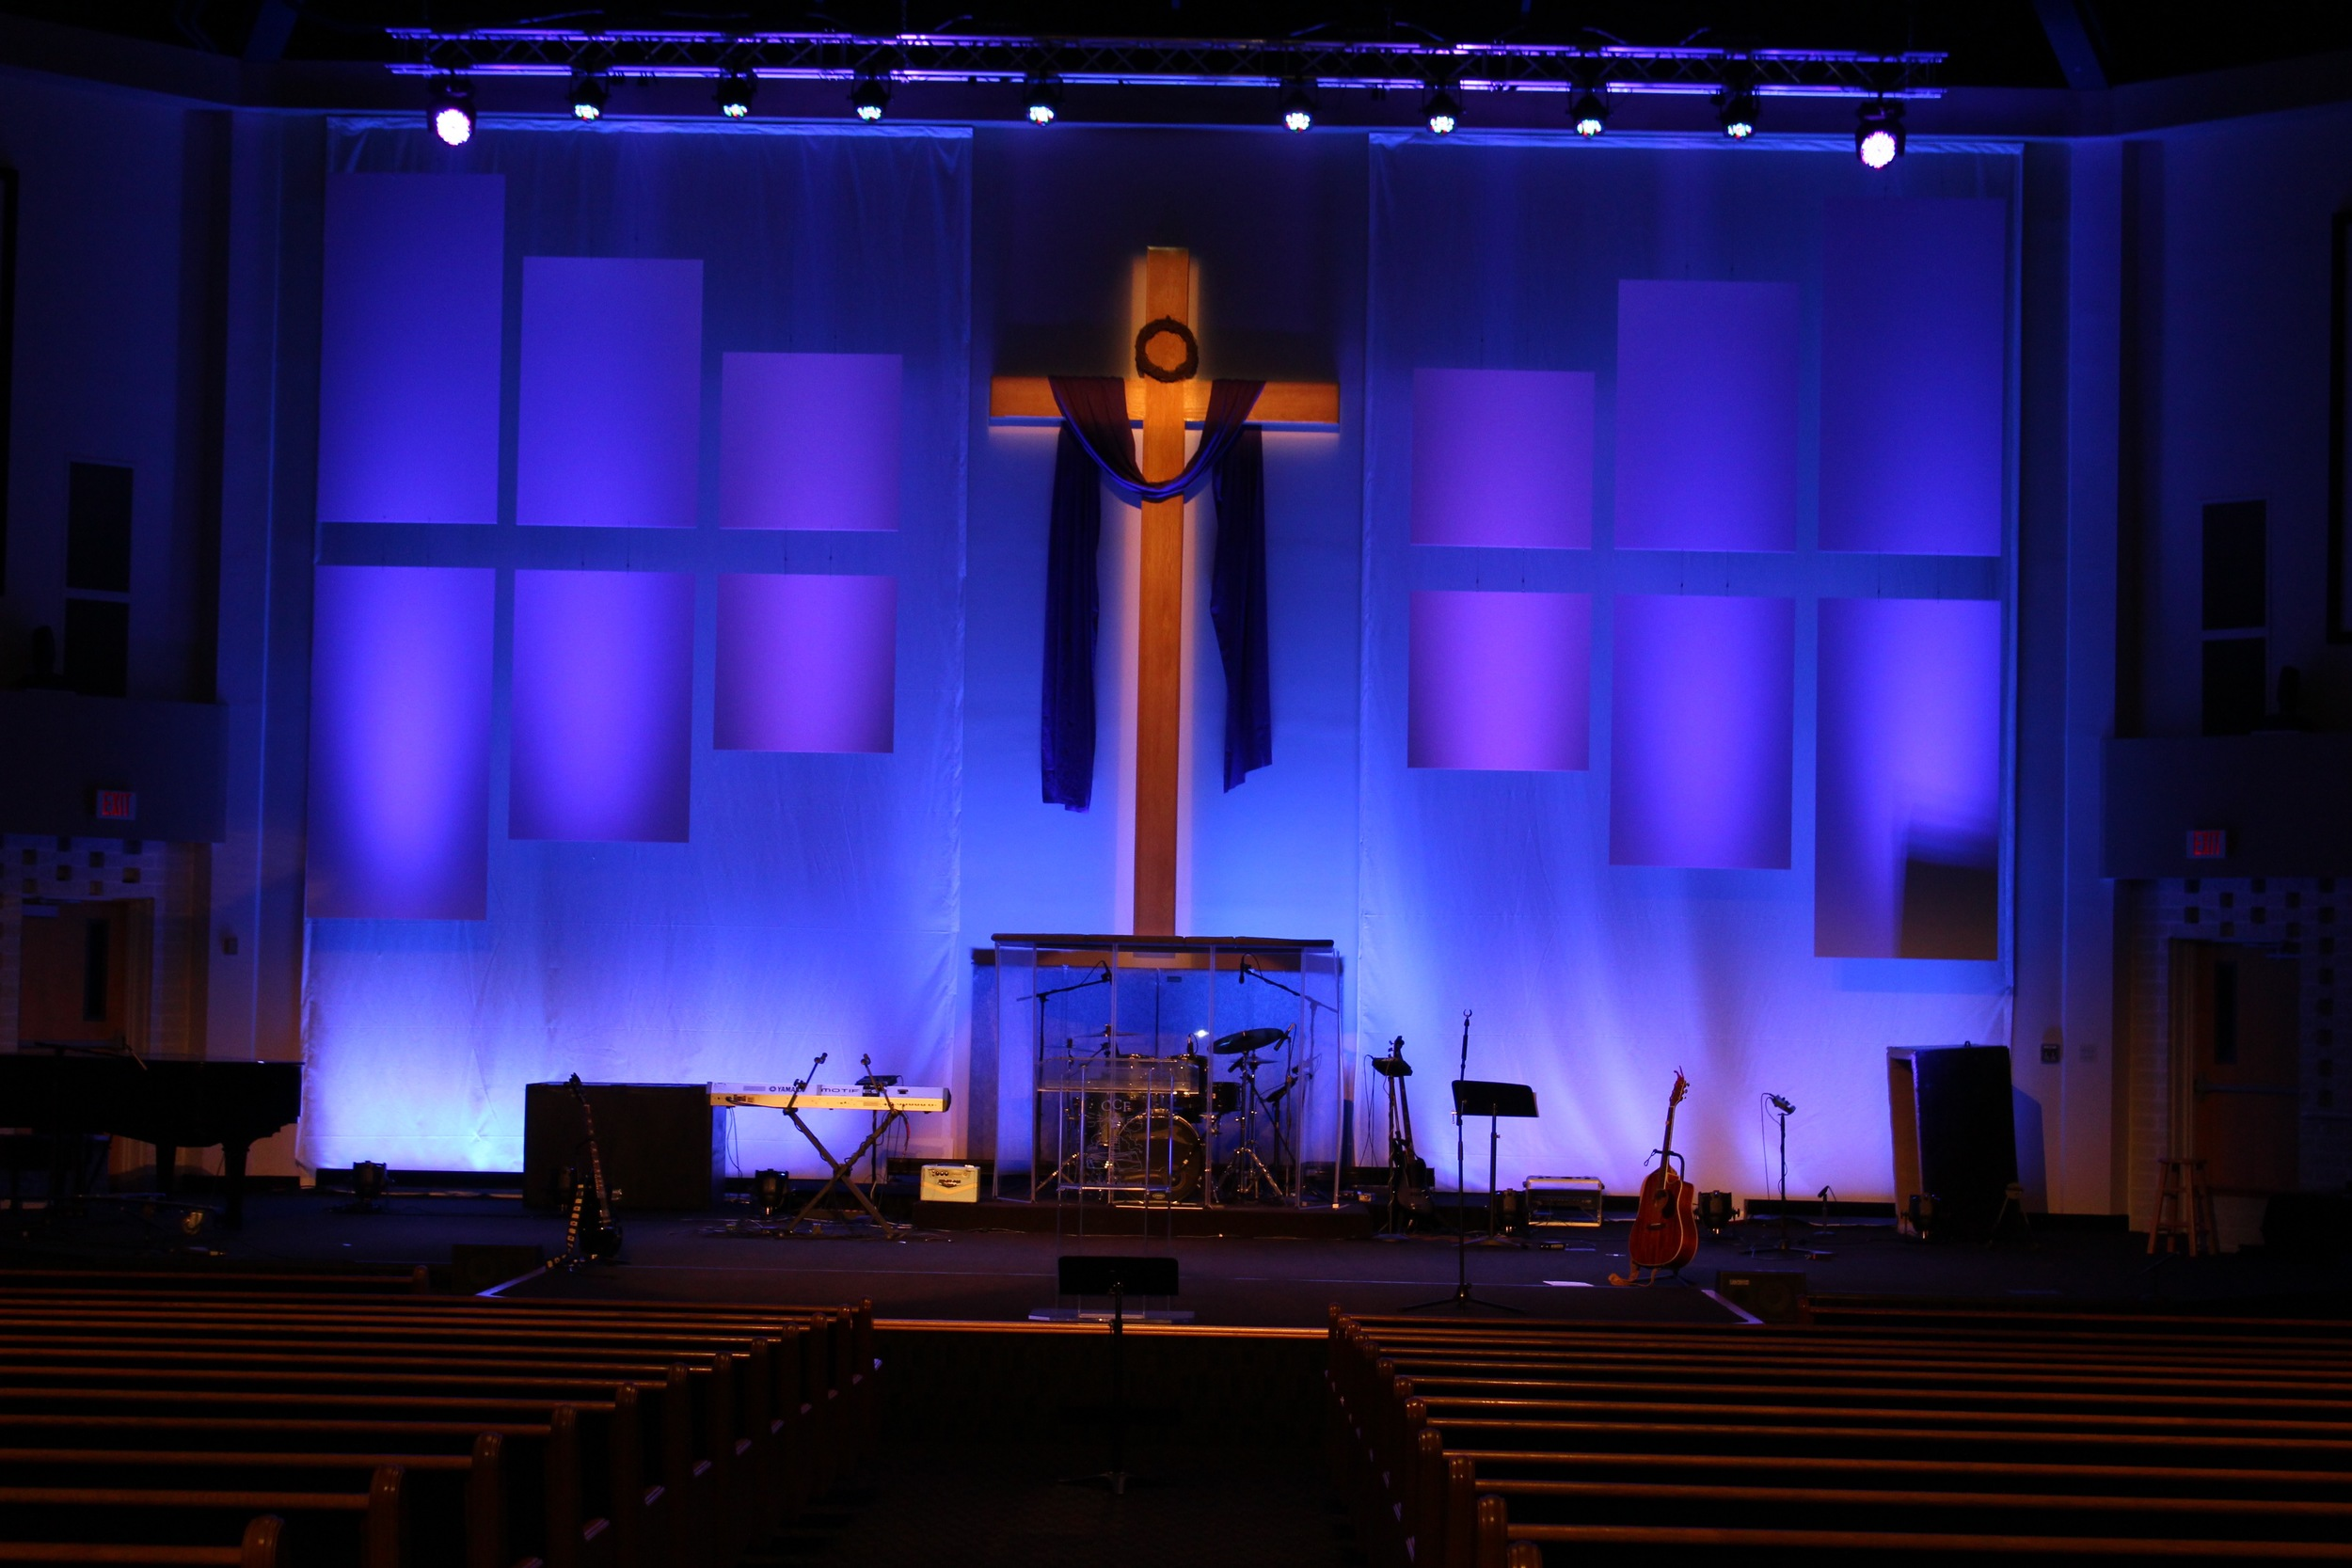 Chesapeake_Christian_Fellowship_Church_22.jpg